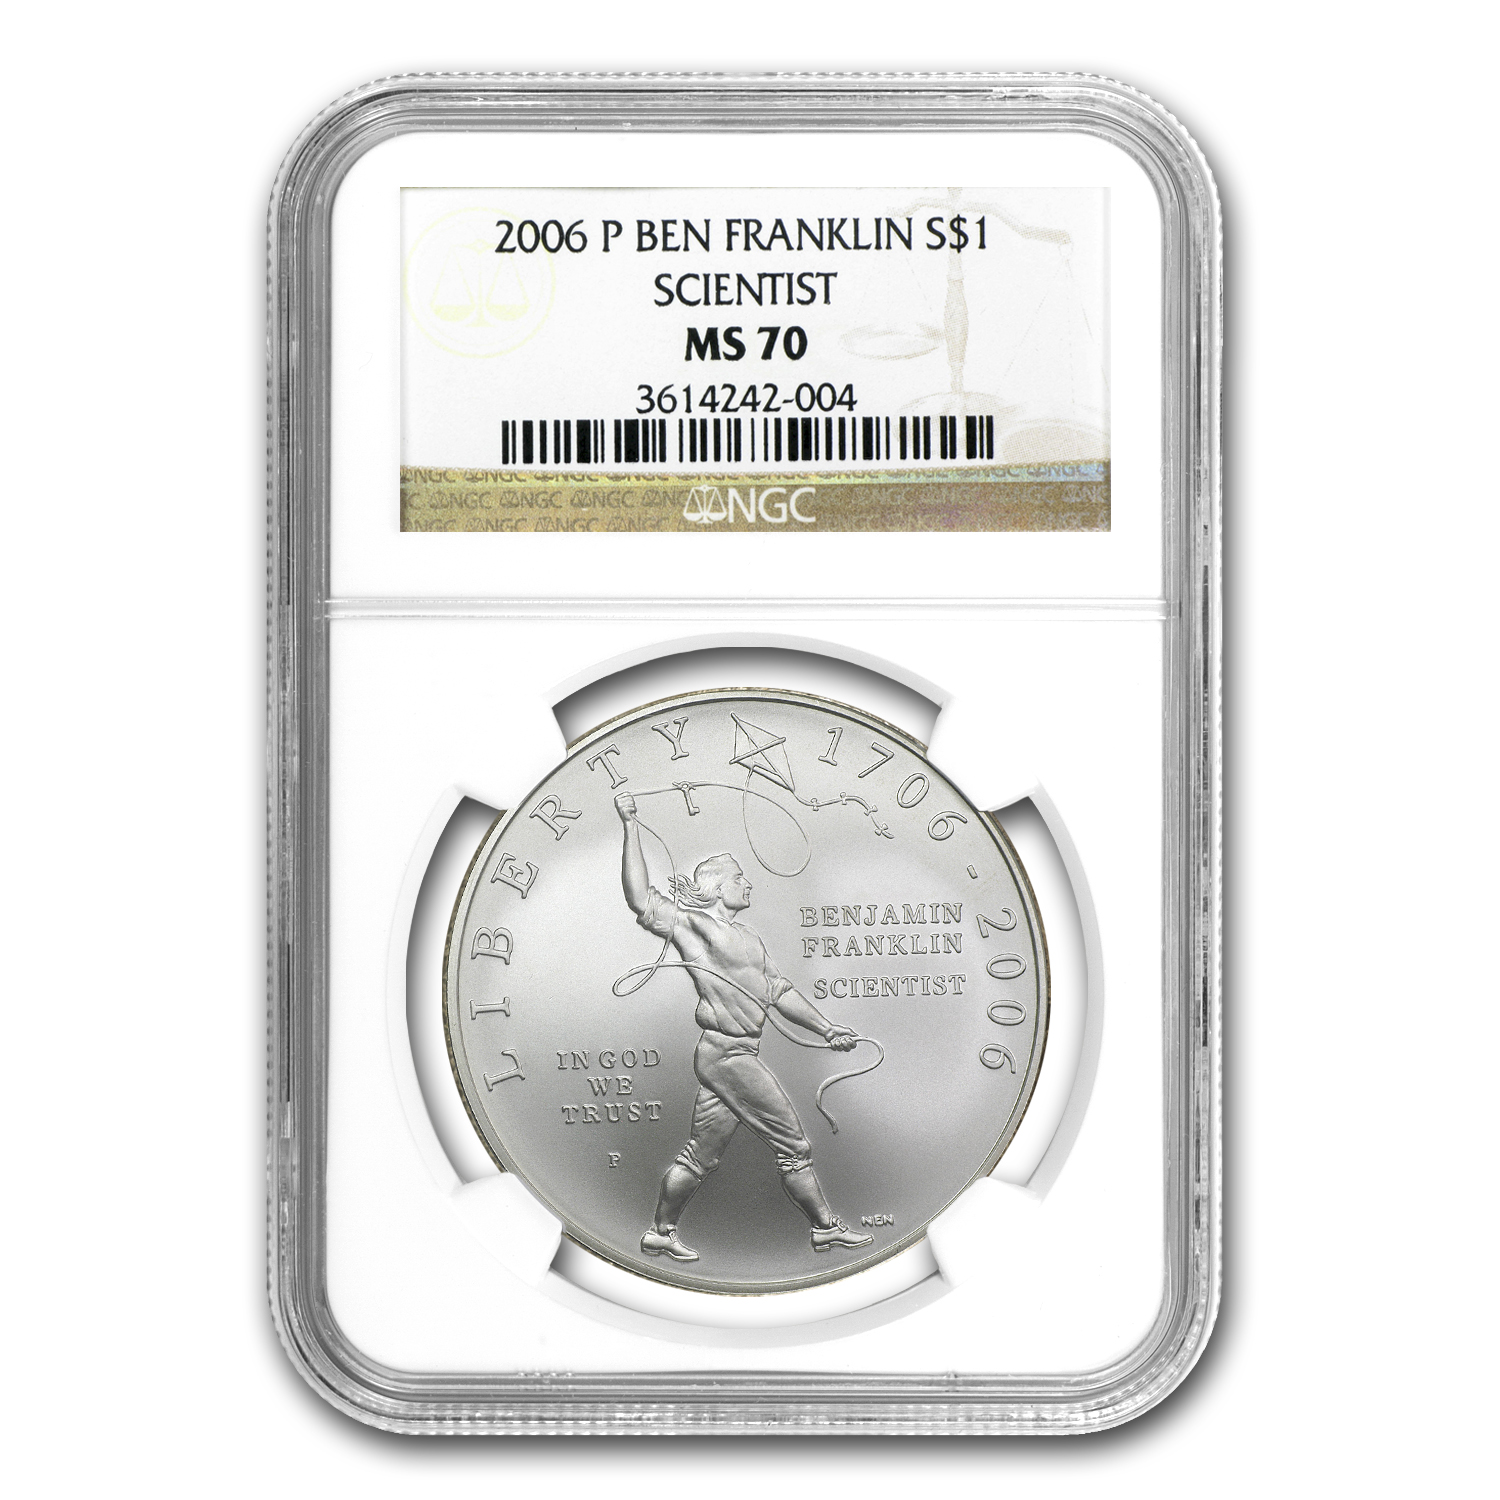 2006-P Ben Franklin Scientist $1 Silver Commemorative MS-70 NGC